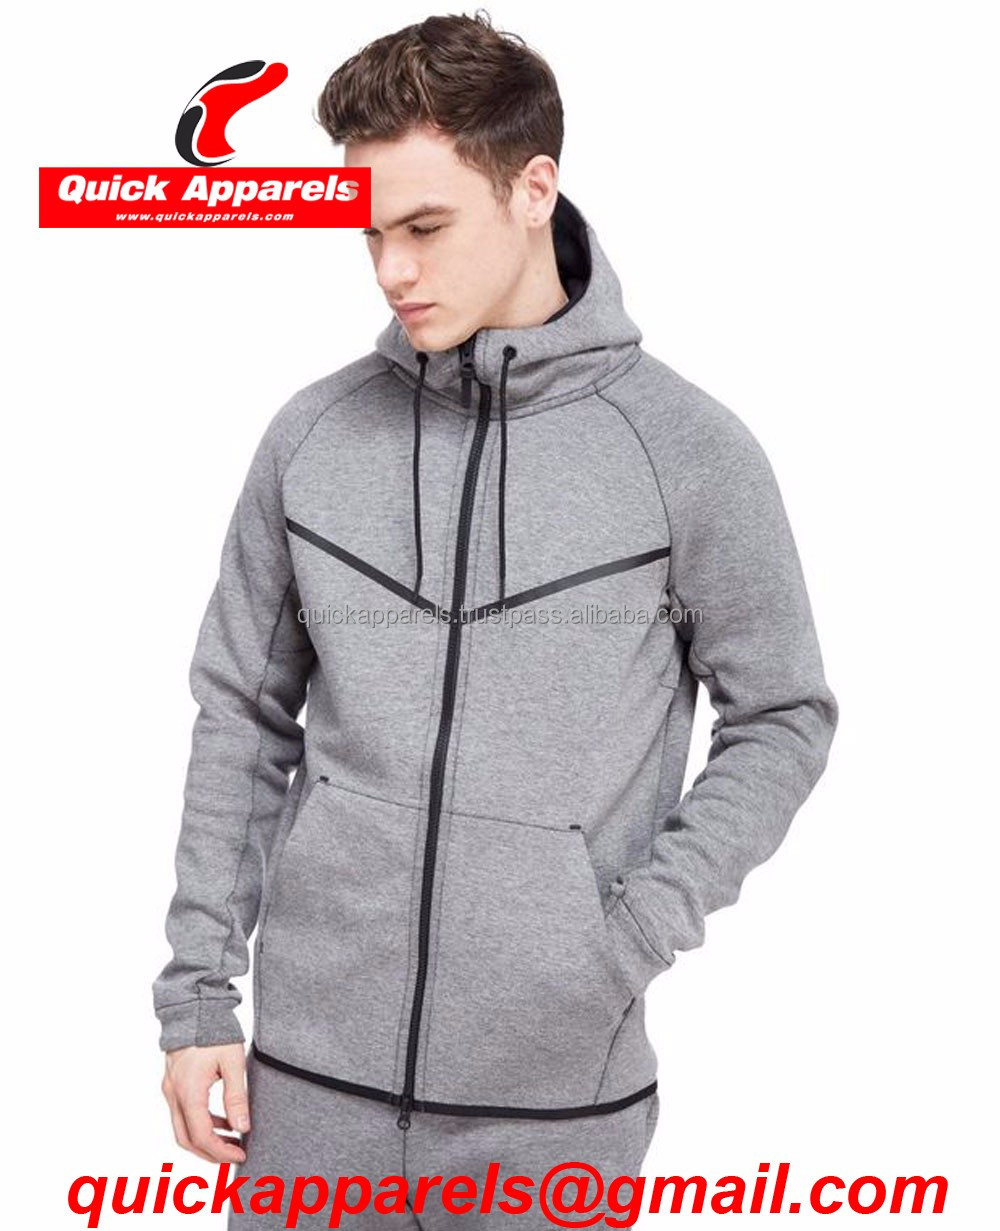 New Style Custom Printed logo Best Quality Hoodies/High quality OEM sports sweatshirt wholesale custom pullover blank mens